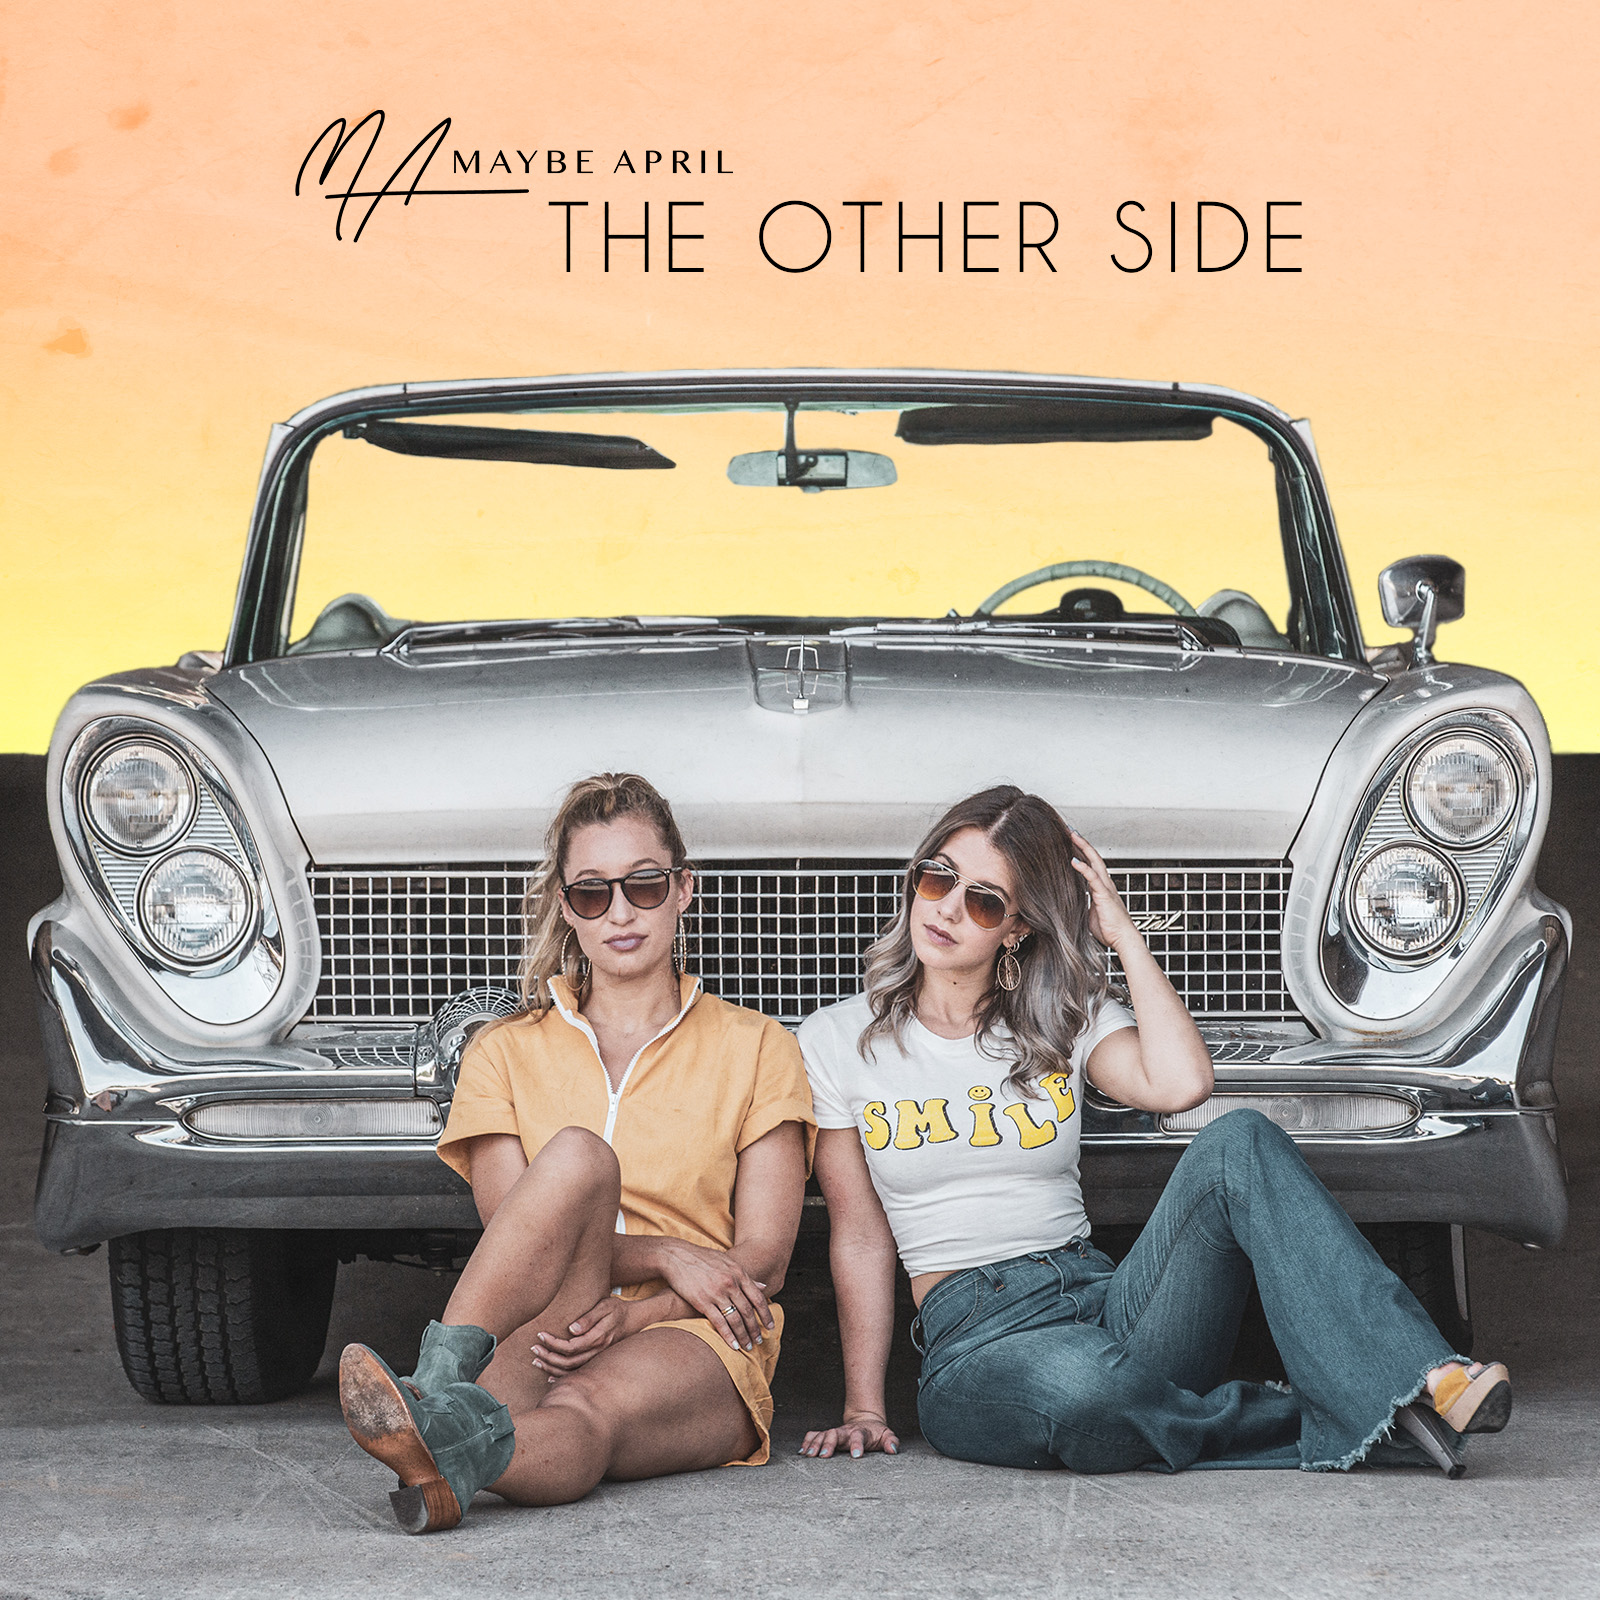 TheOtherSide album coverFINAL.jpg